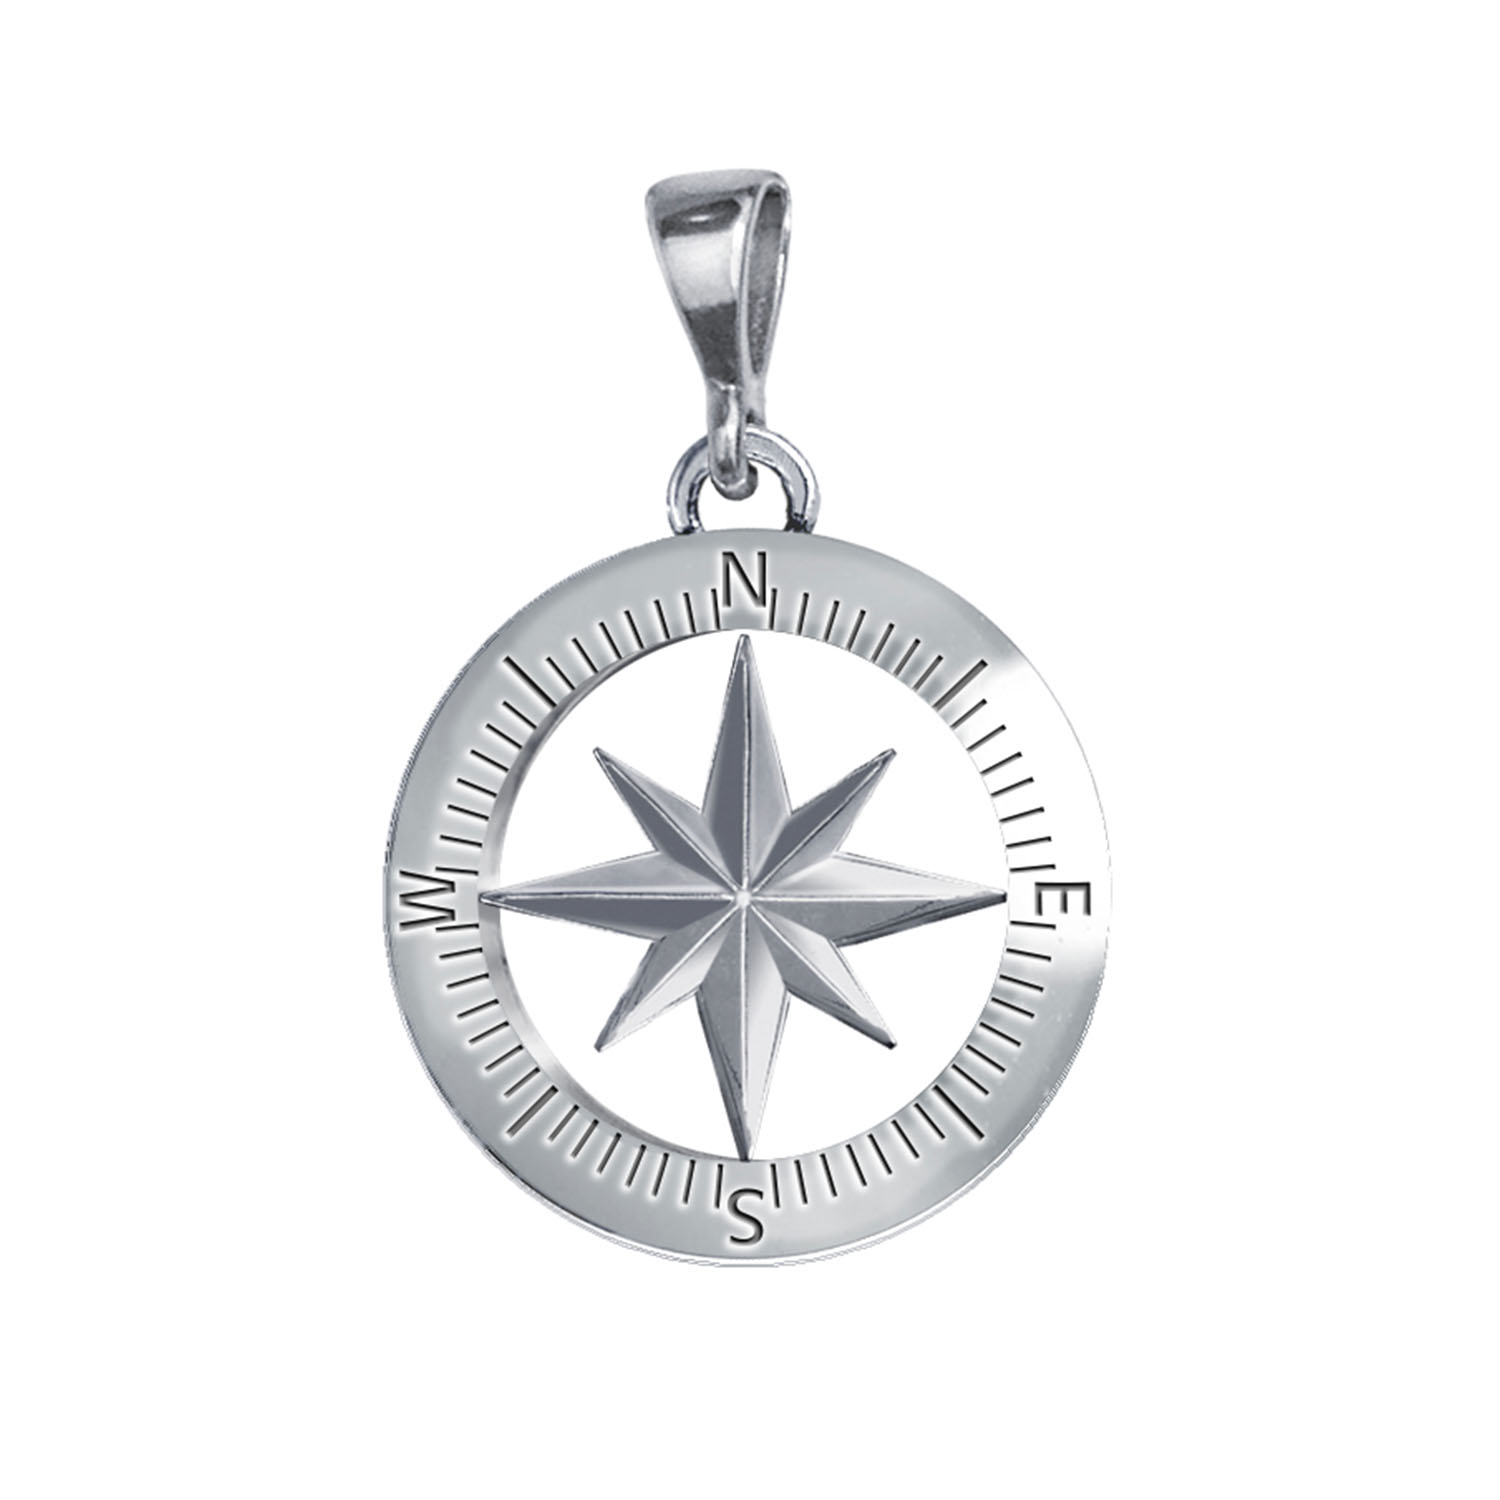 Compass Rose Photoshop Jpg FRONT.jpg